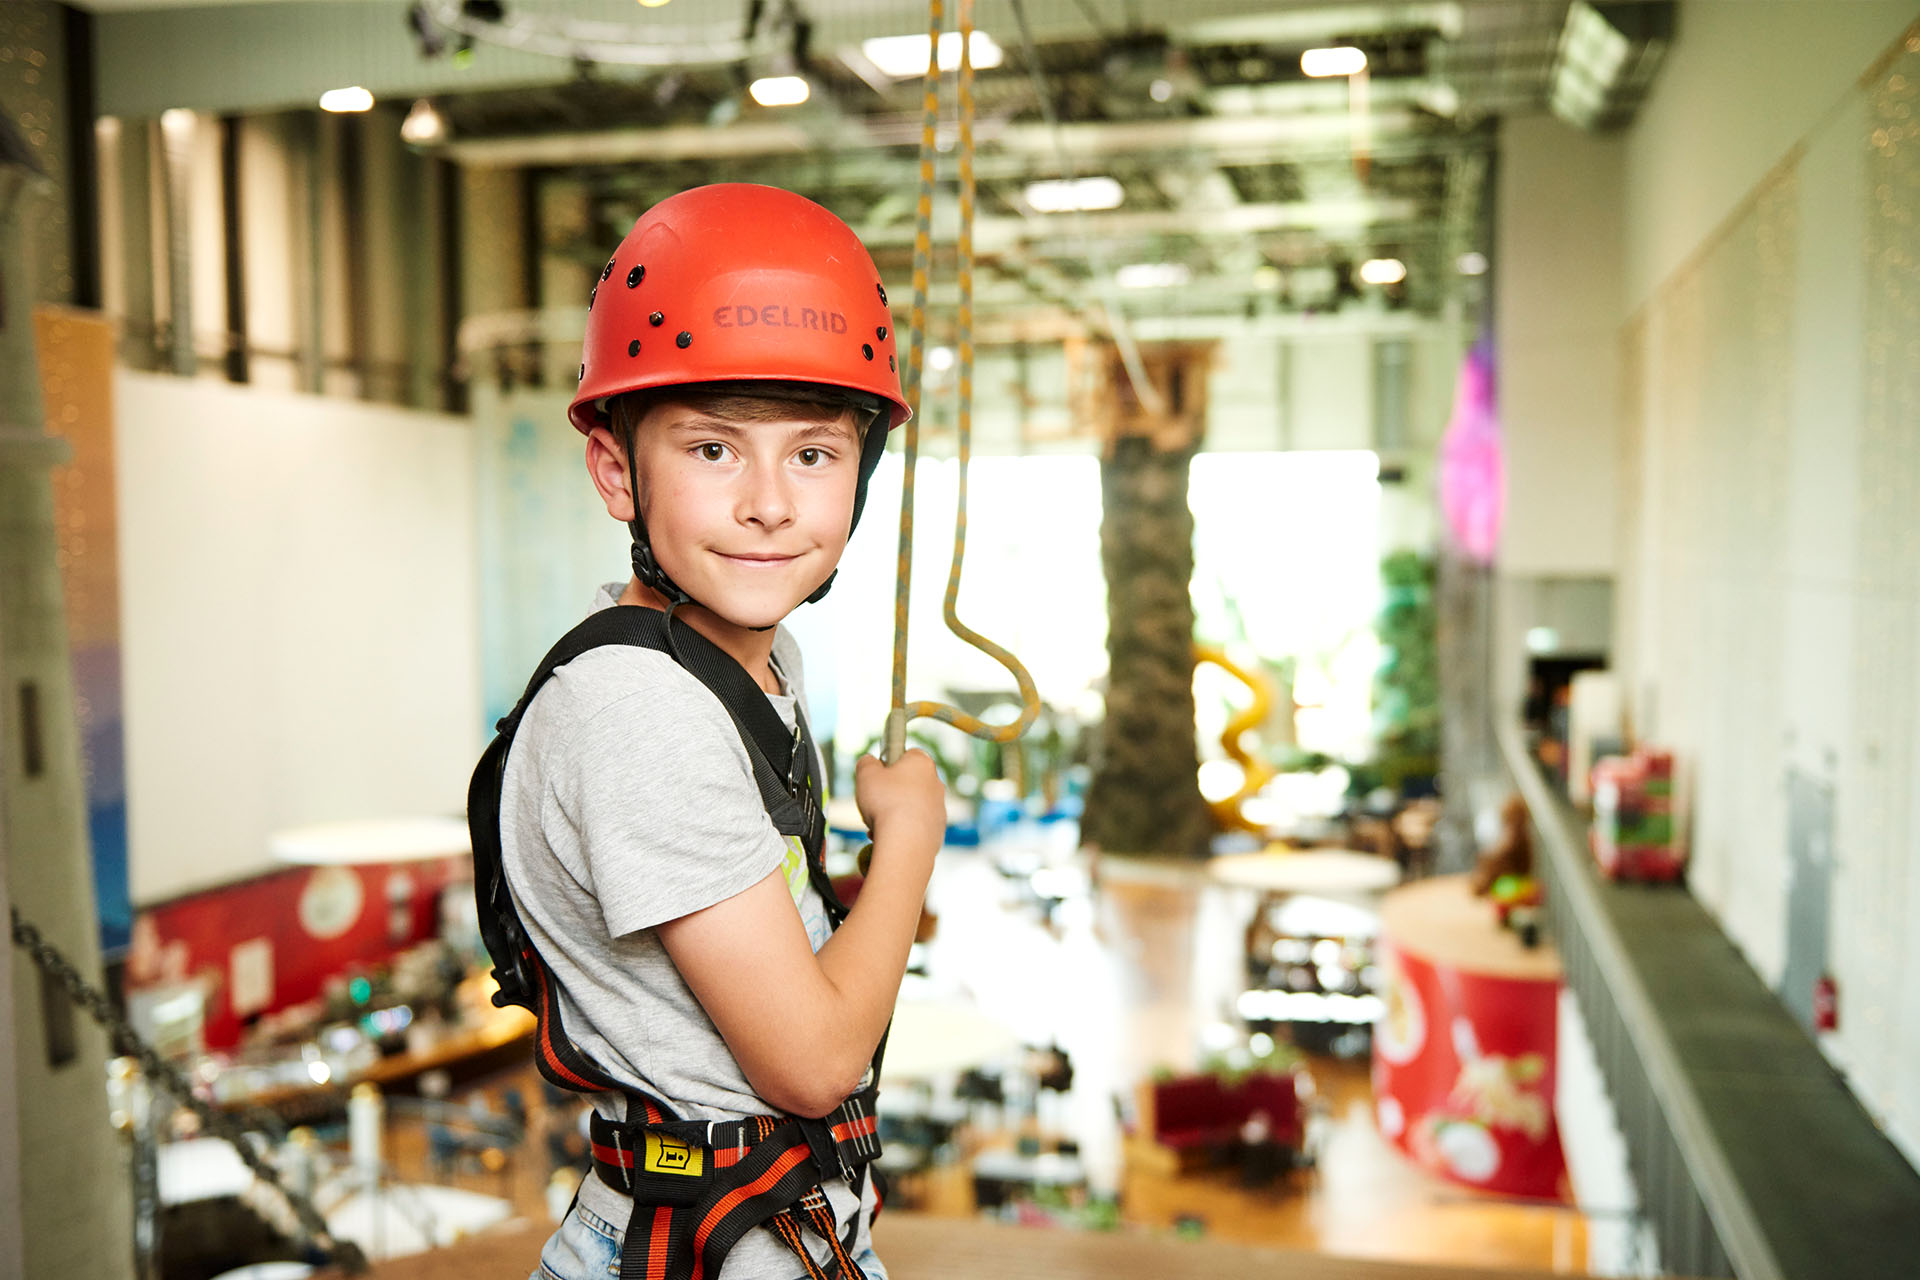 Sindelfingen Sensapolis The Indoor Leisure Park For The Whole Family